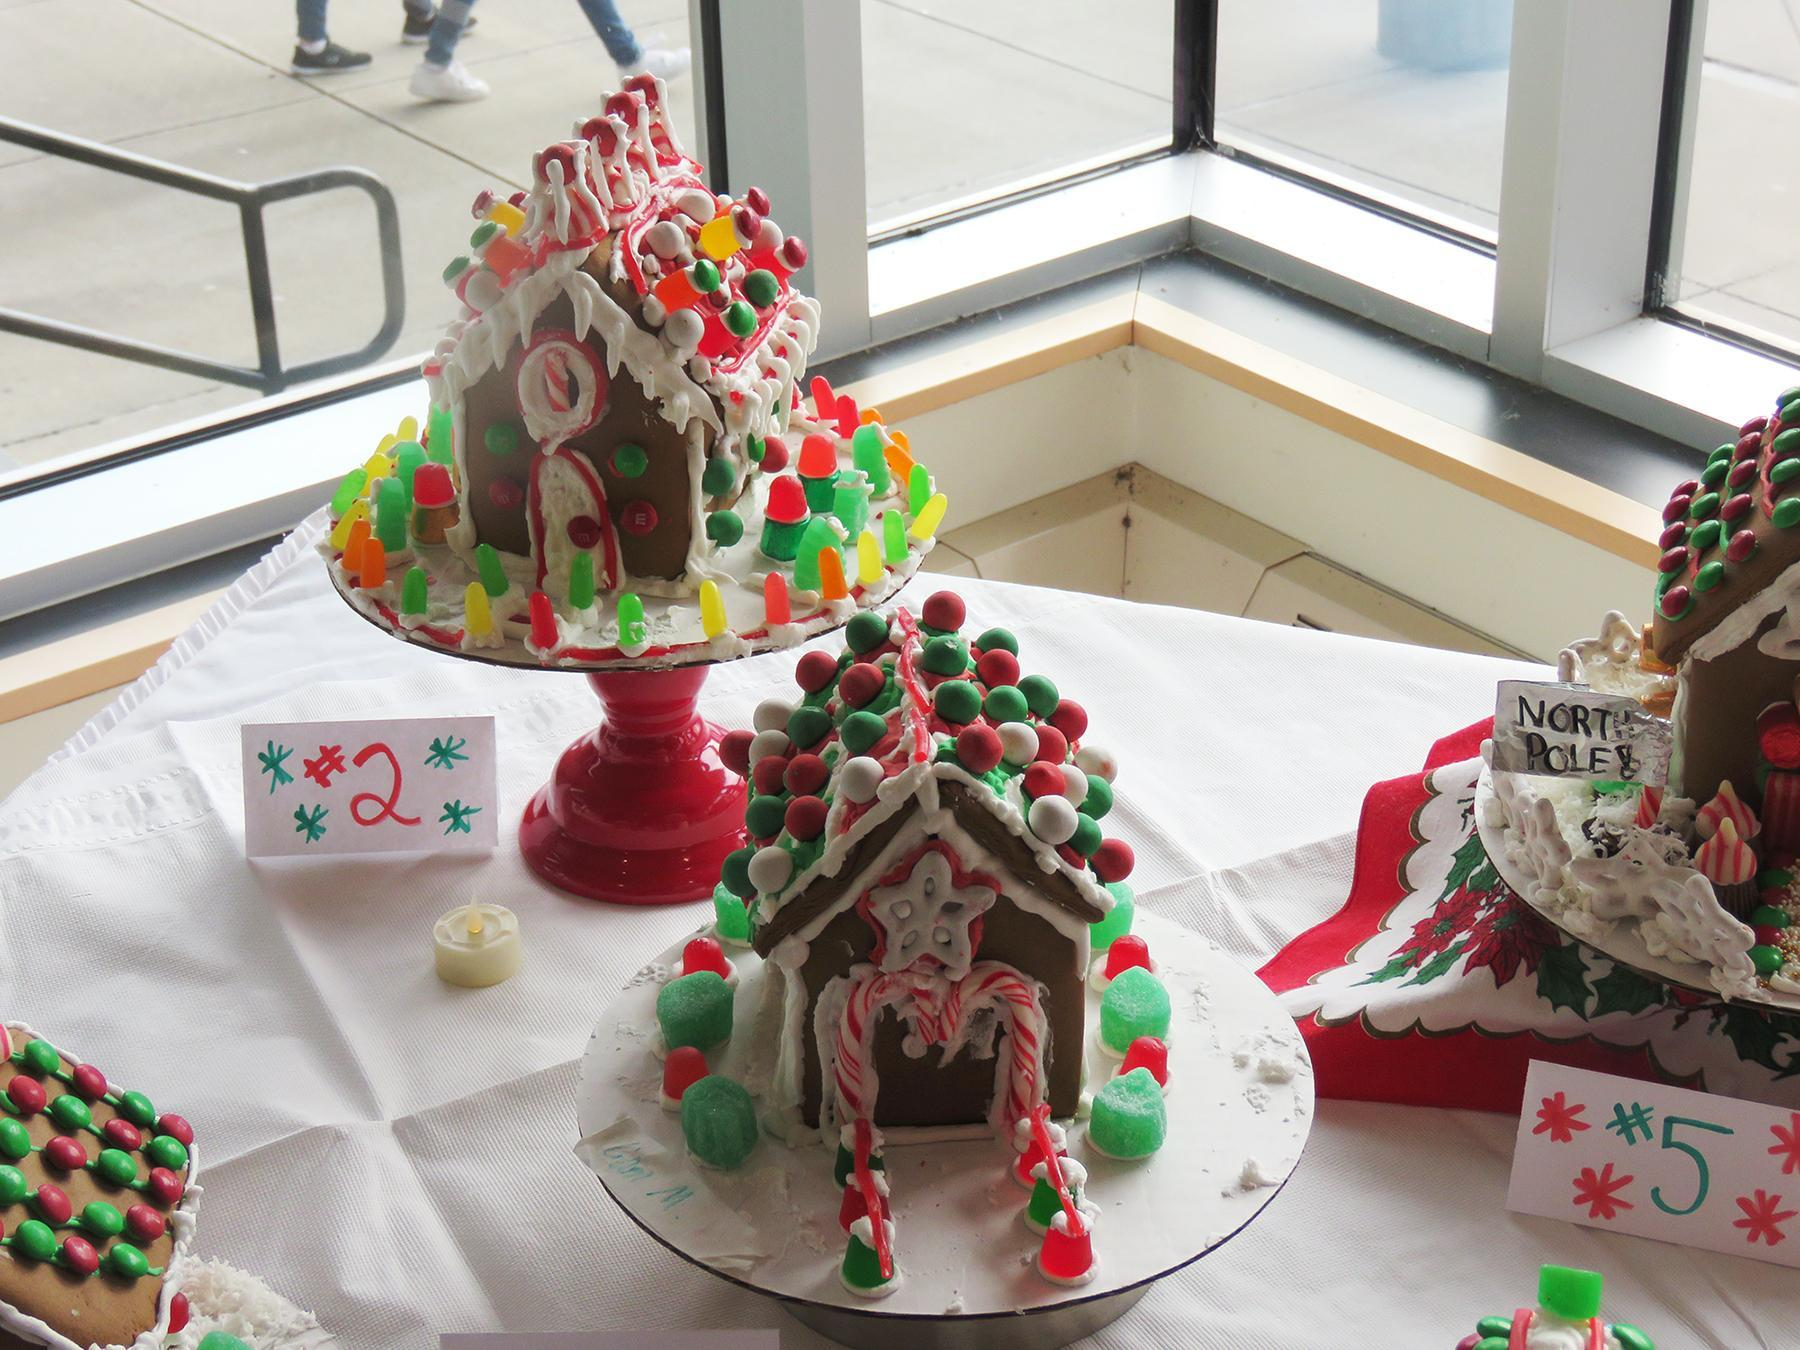 Two intricately-decorated gingerbread houses